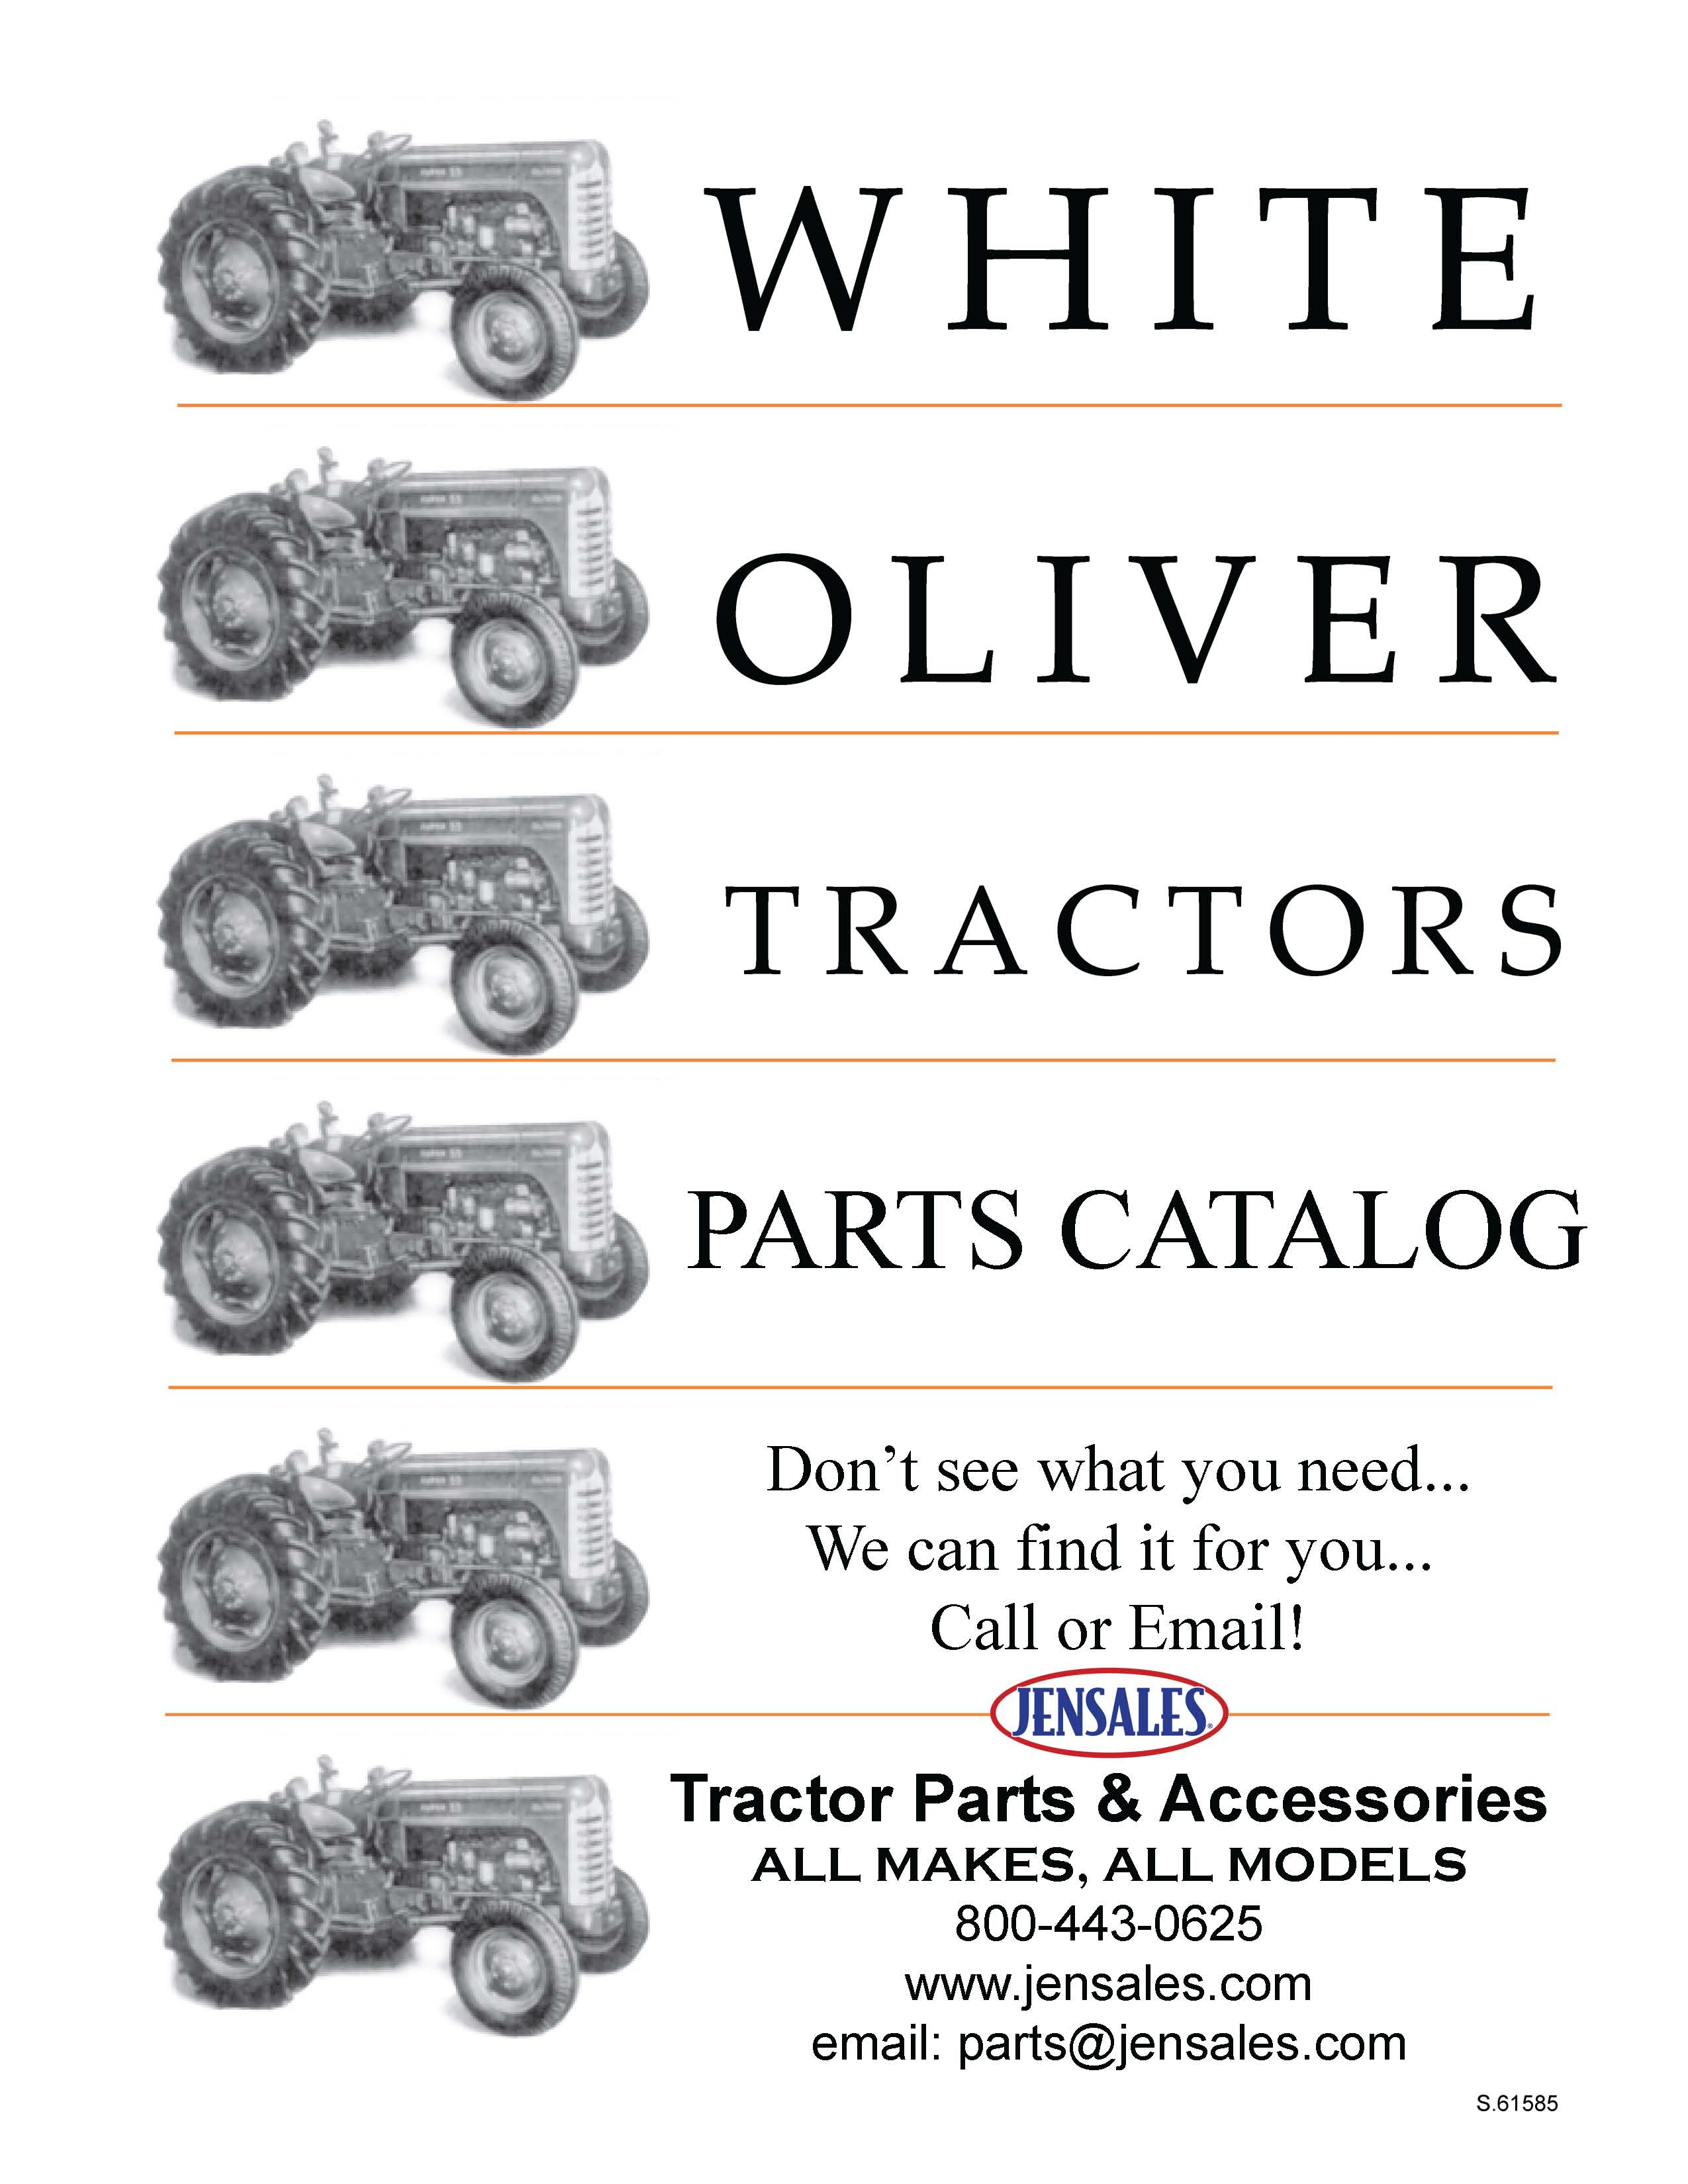 They are supplemental catalogs of Parts not yet available on our website,  but can be ordered by phone. Please call for orders and questions.